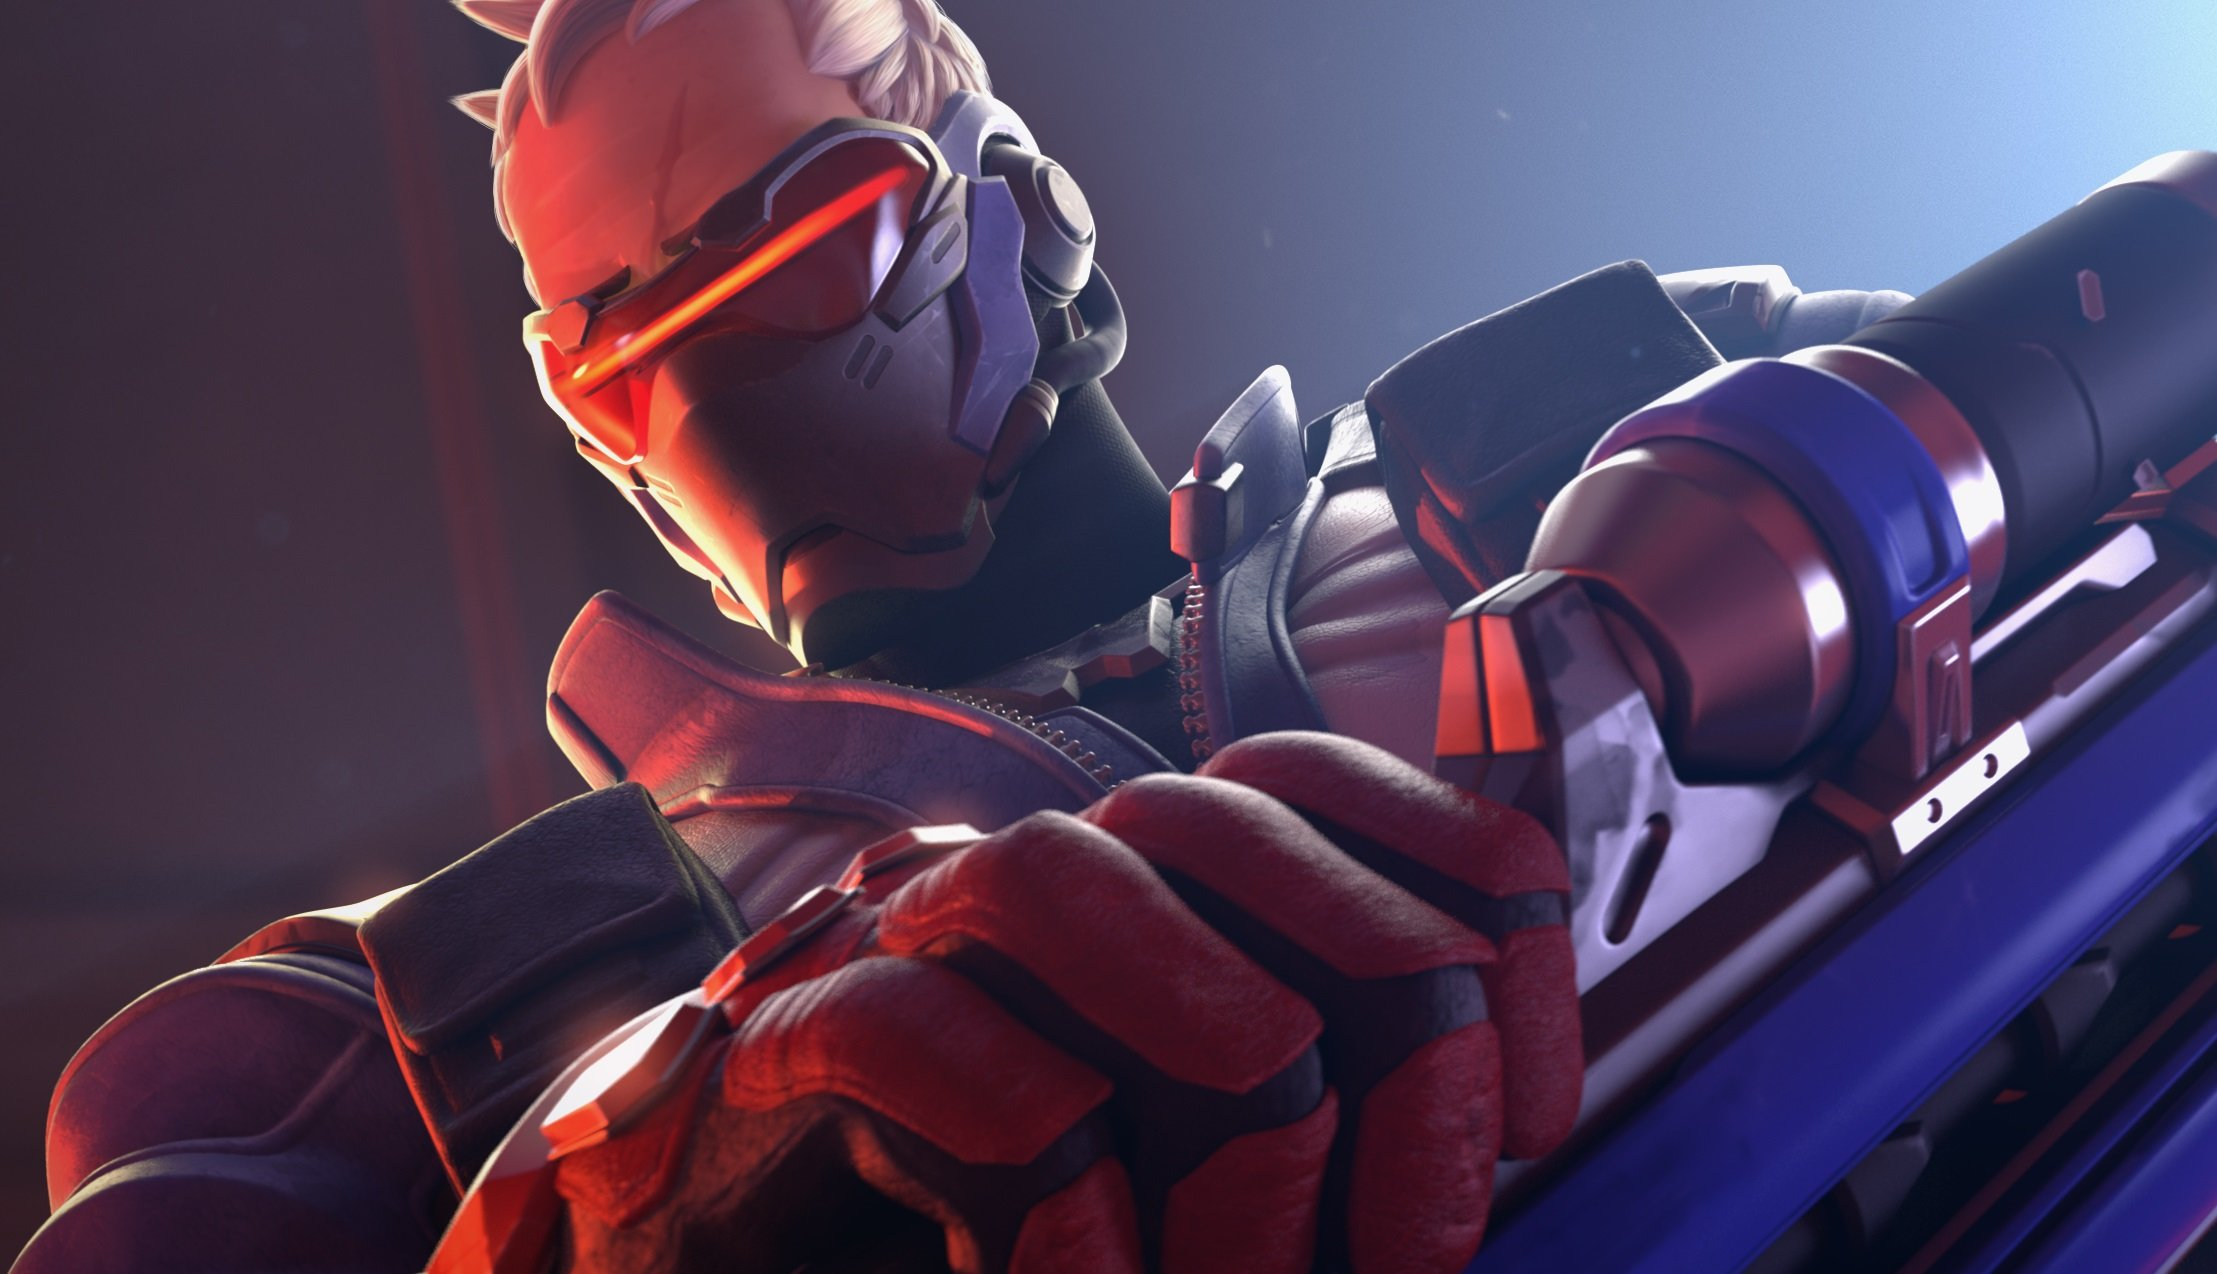 Soldier 76 from Overwatch has a cool, futuristic face mask that'd be fun to replicate.